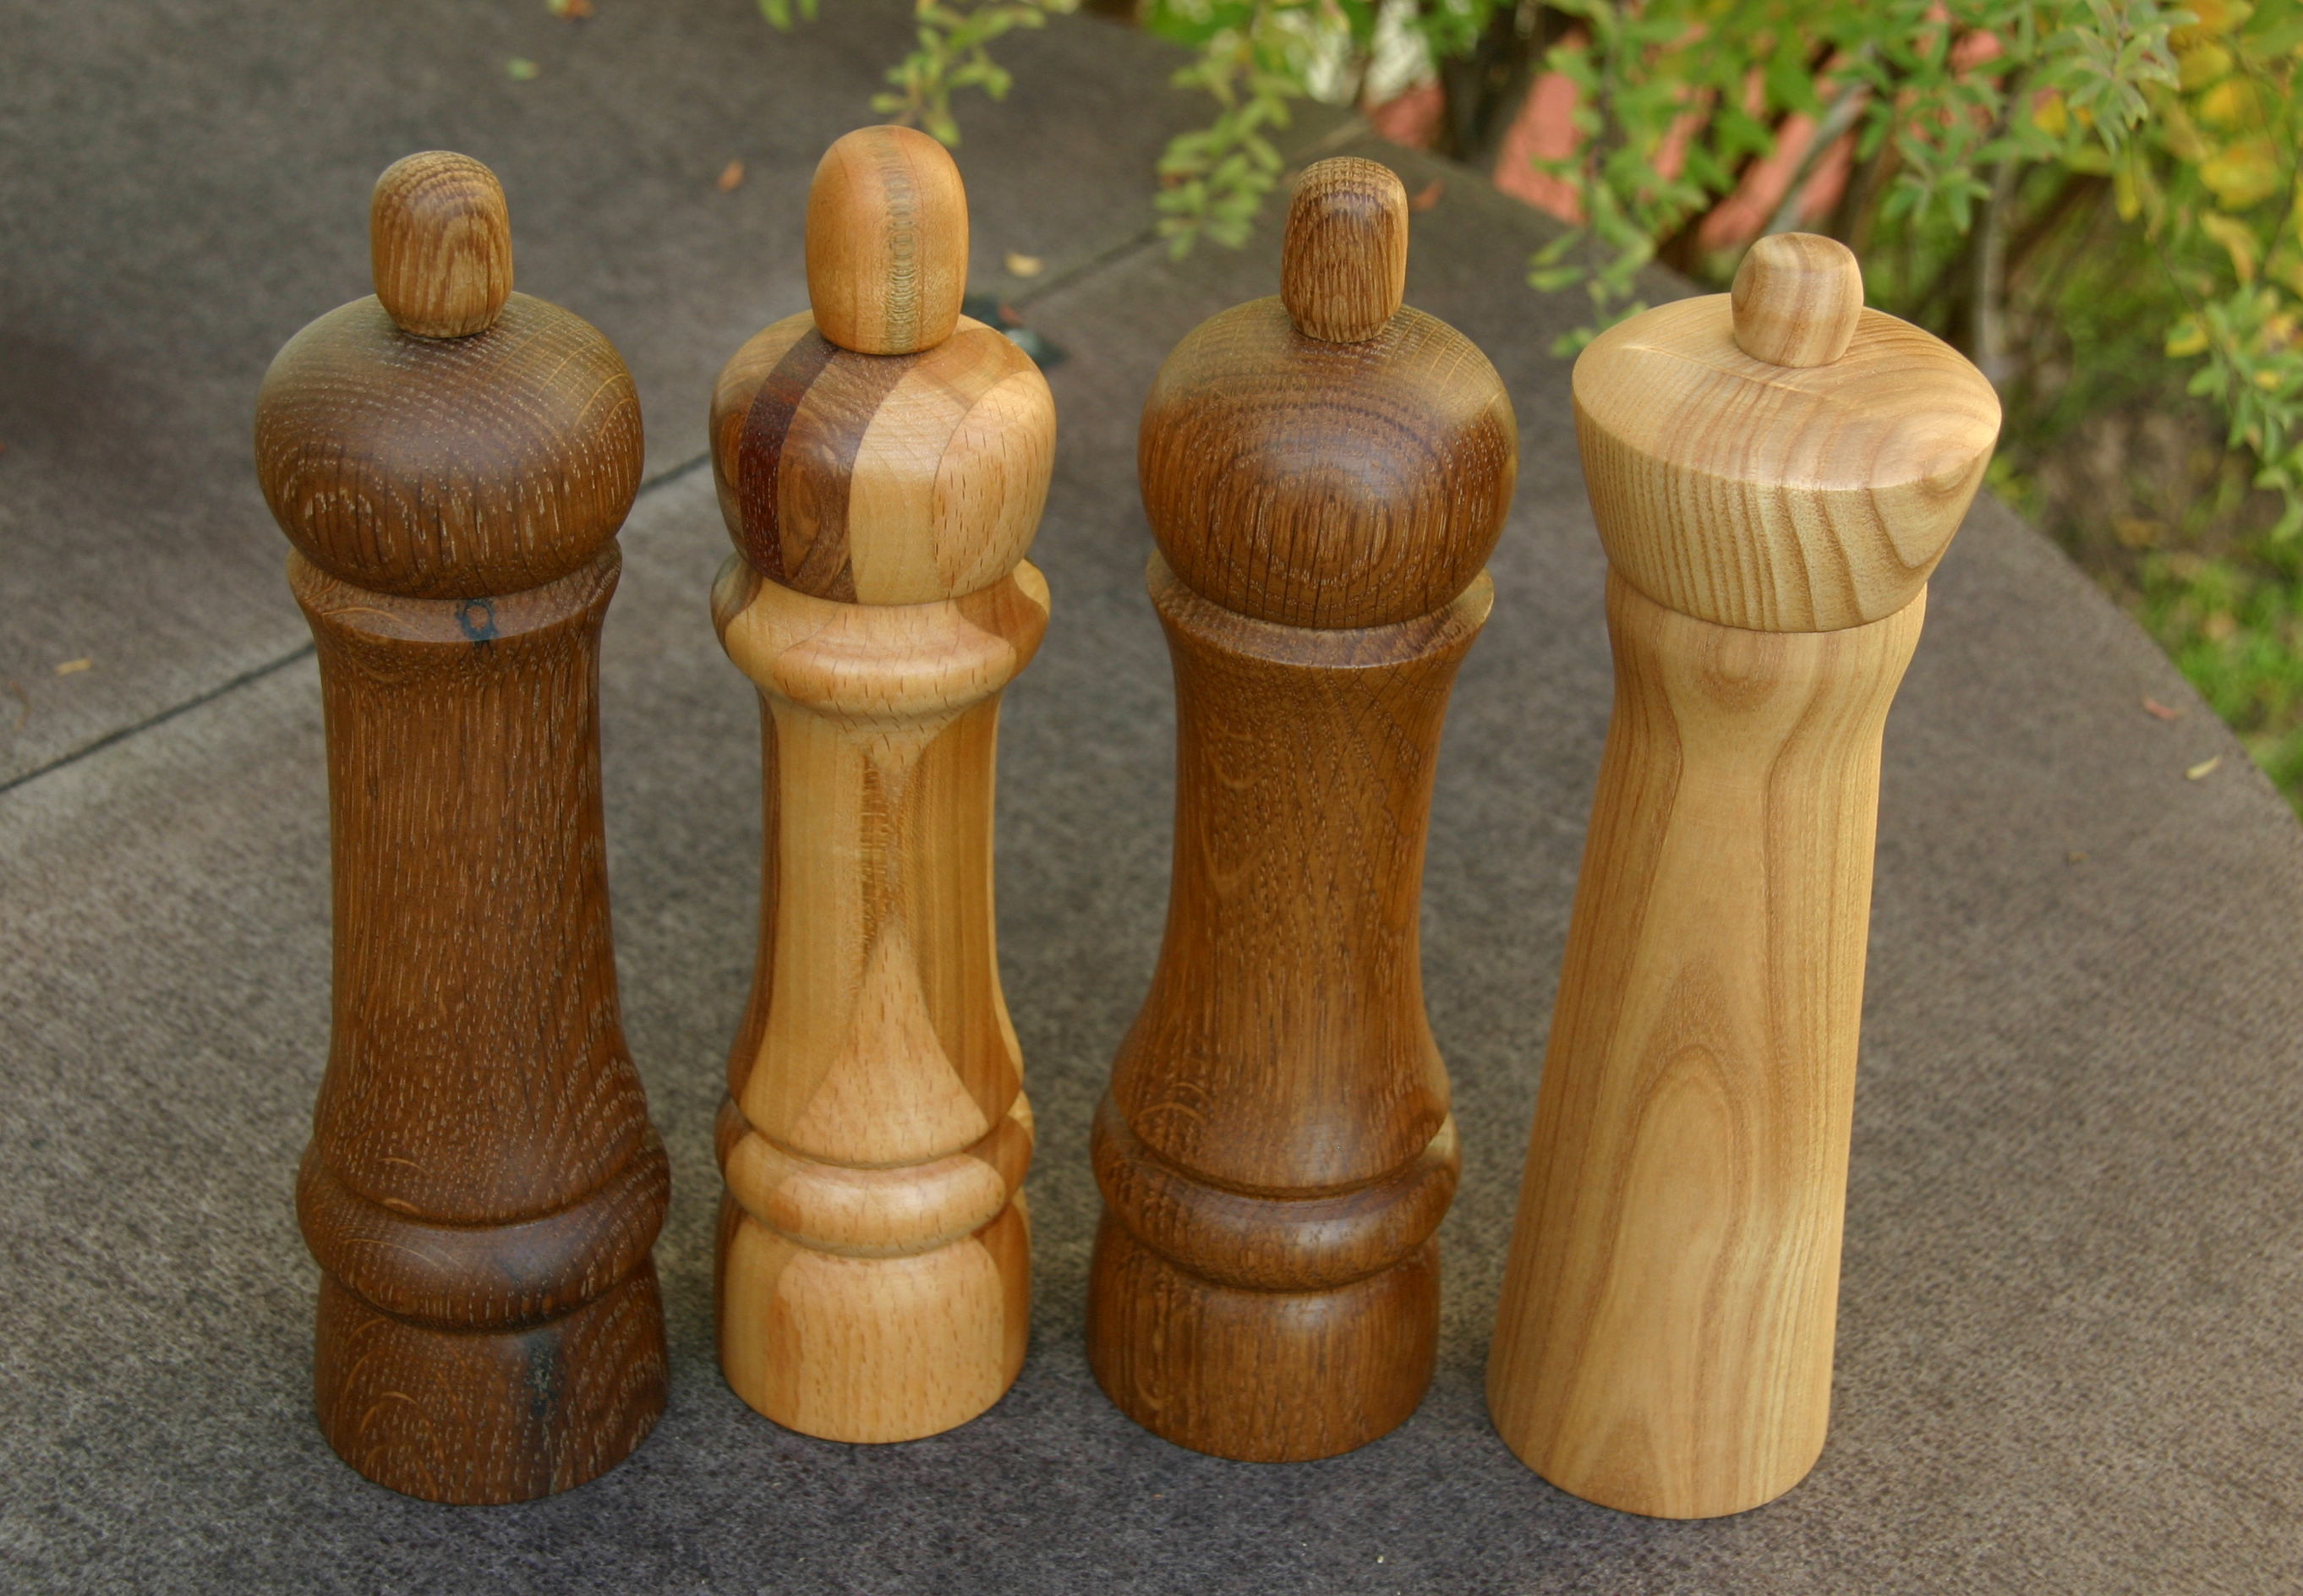 File:Woodturning-15-Peppermills-gje.jpg - Wikimedia Commons